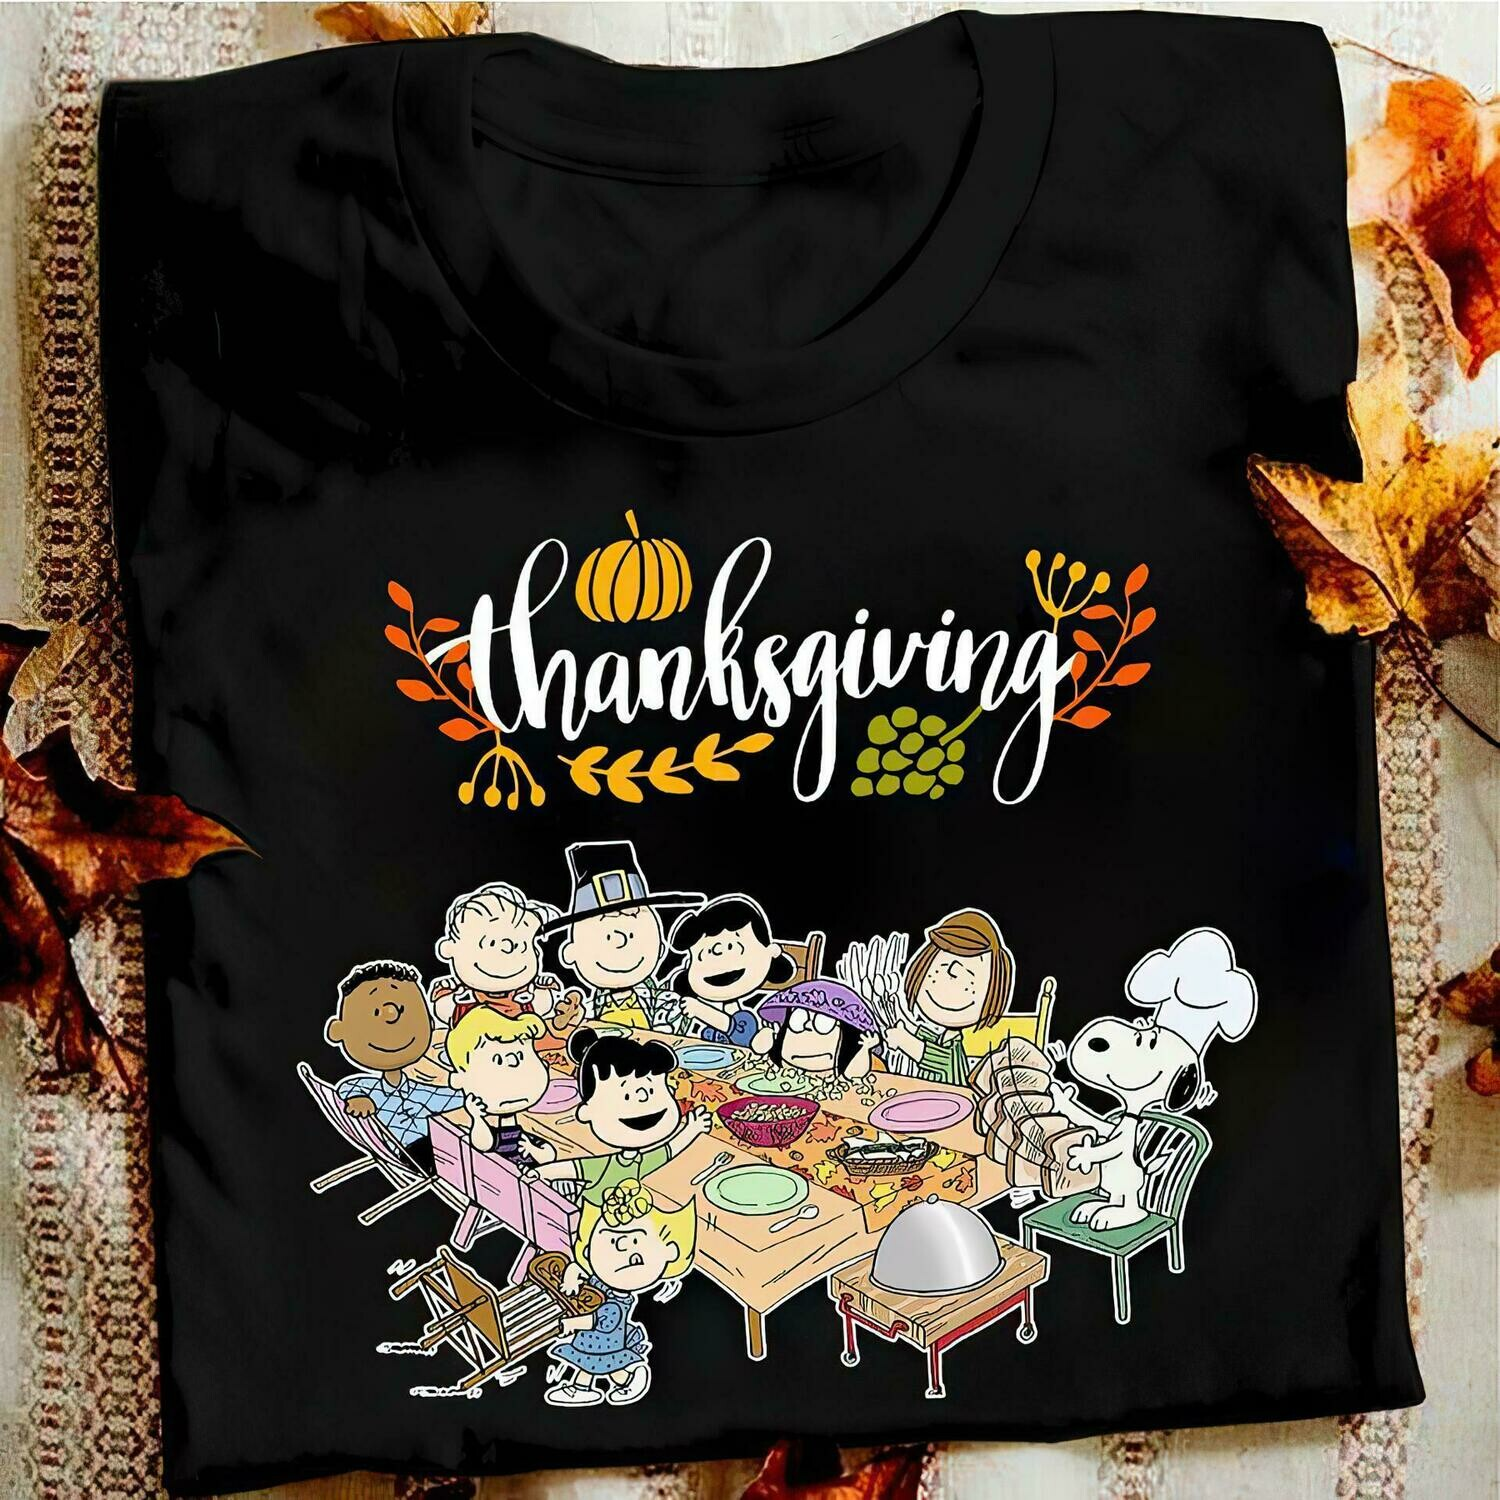 Snoopy Peanuts with friends thanksgiving shirt